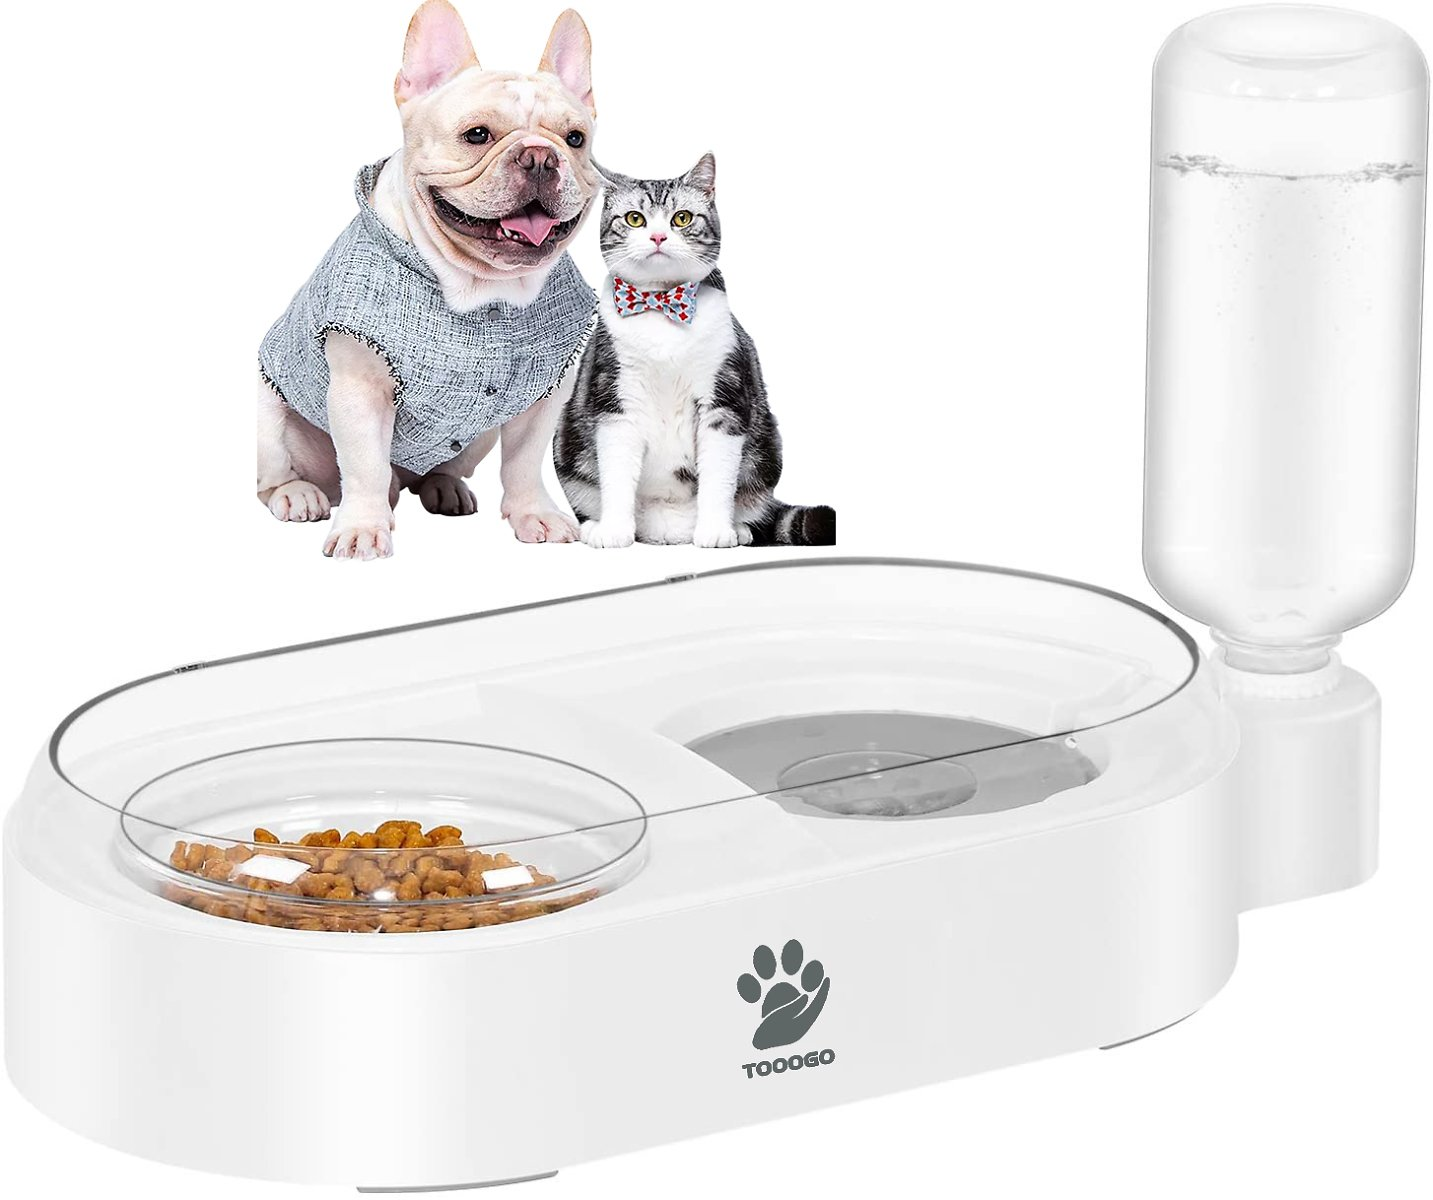 TOOOGO 2 in 1 Automatic Gravity Water Bowl & Food Bowl Set, Detachable No-Spill Pet Water Dispenser Bottle and Glass Feeder Bow